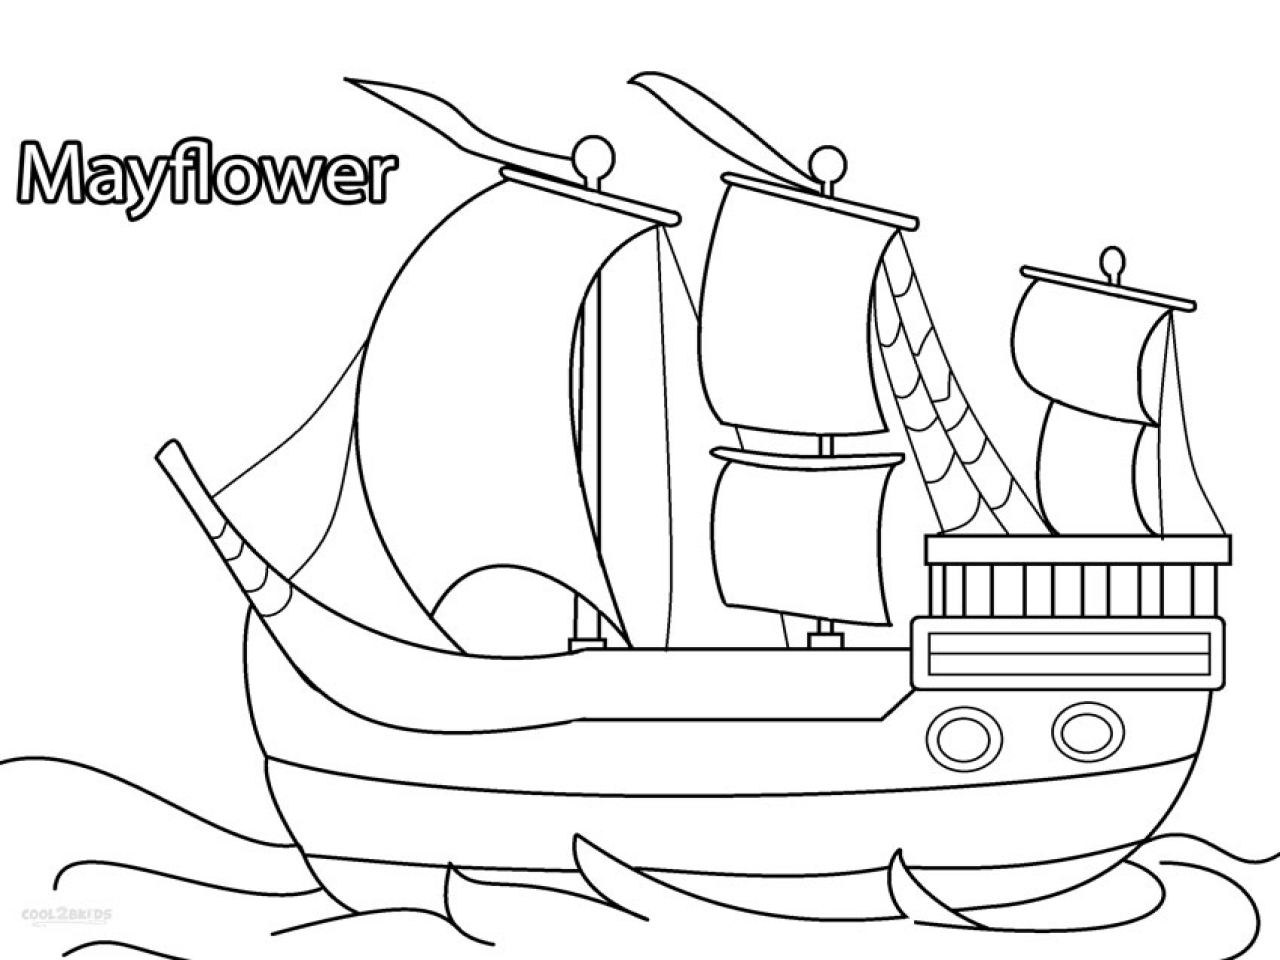 The Best Free Mayflower Drawing Images Download From 144